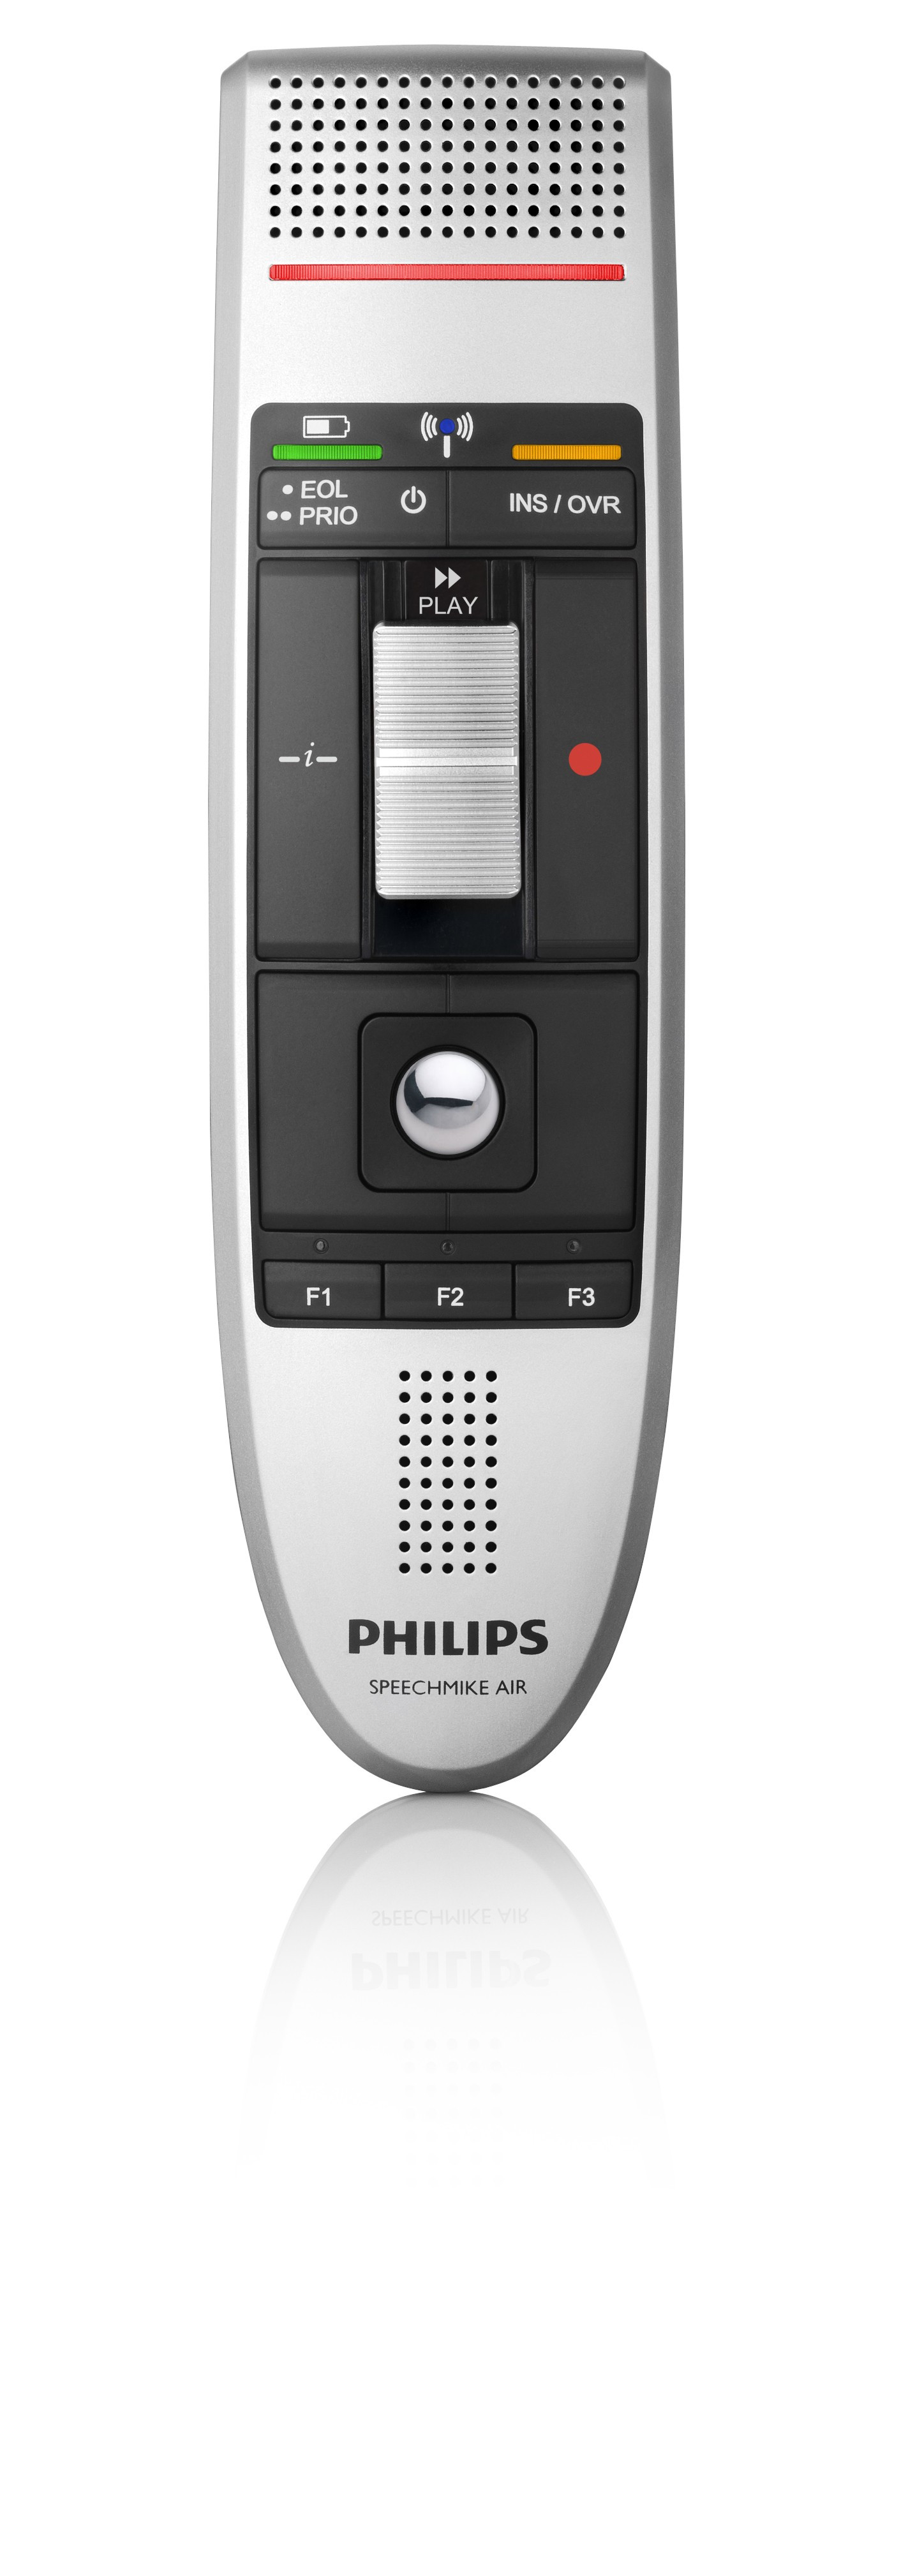 Philips LFH3020 SpeechMike Air Slider PHI Integrator Version